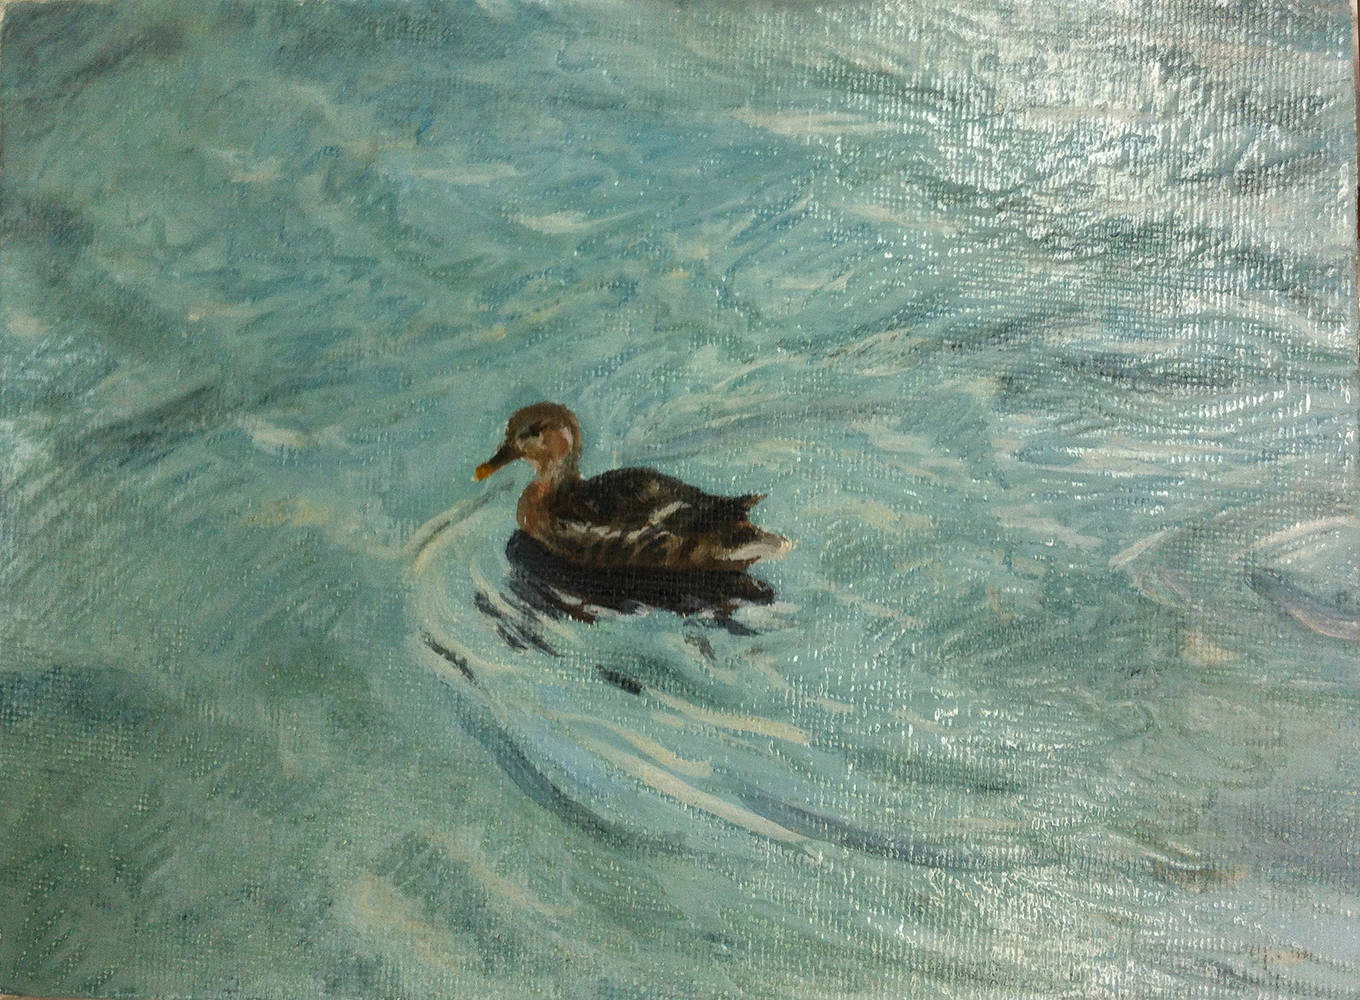 Oil painting Small Duck on Rippling Water by Anastasia O'melveny